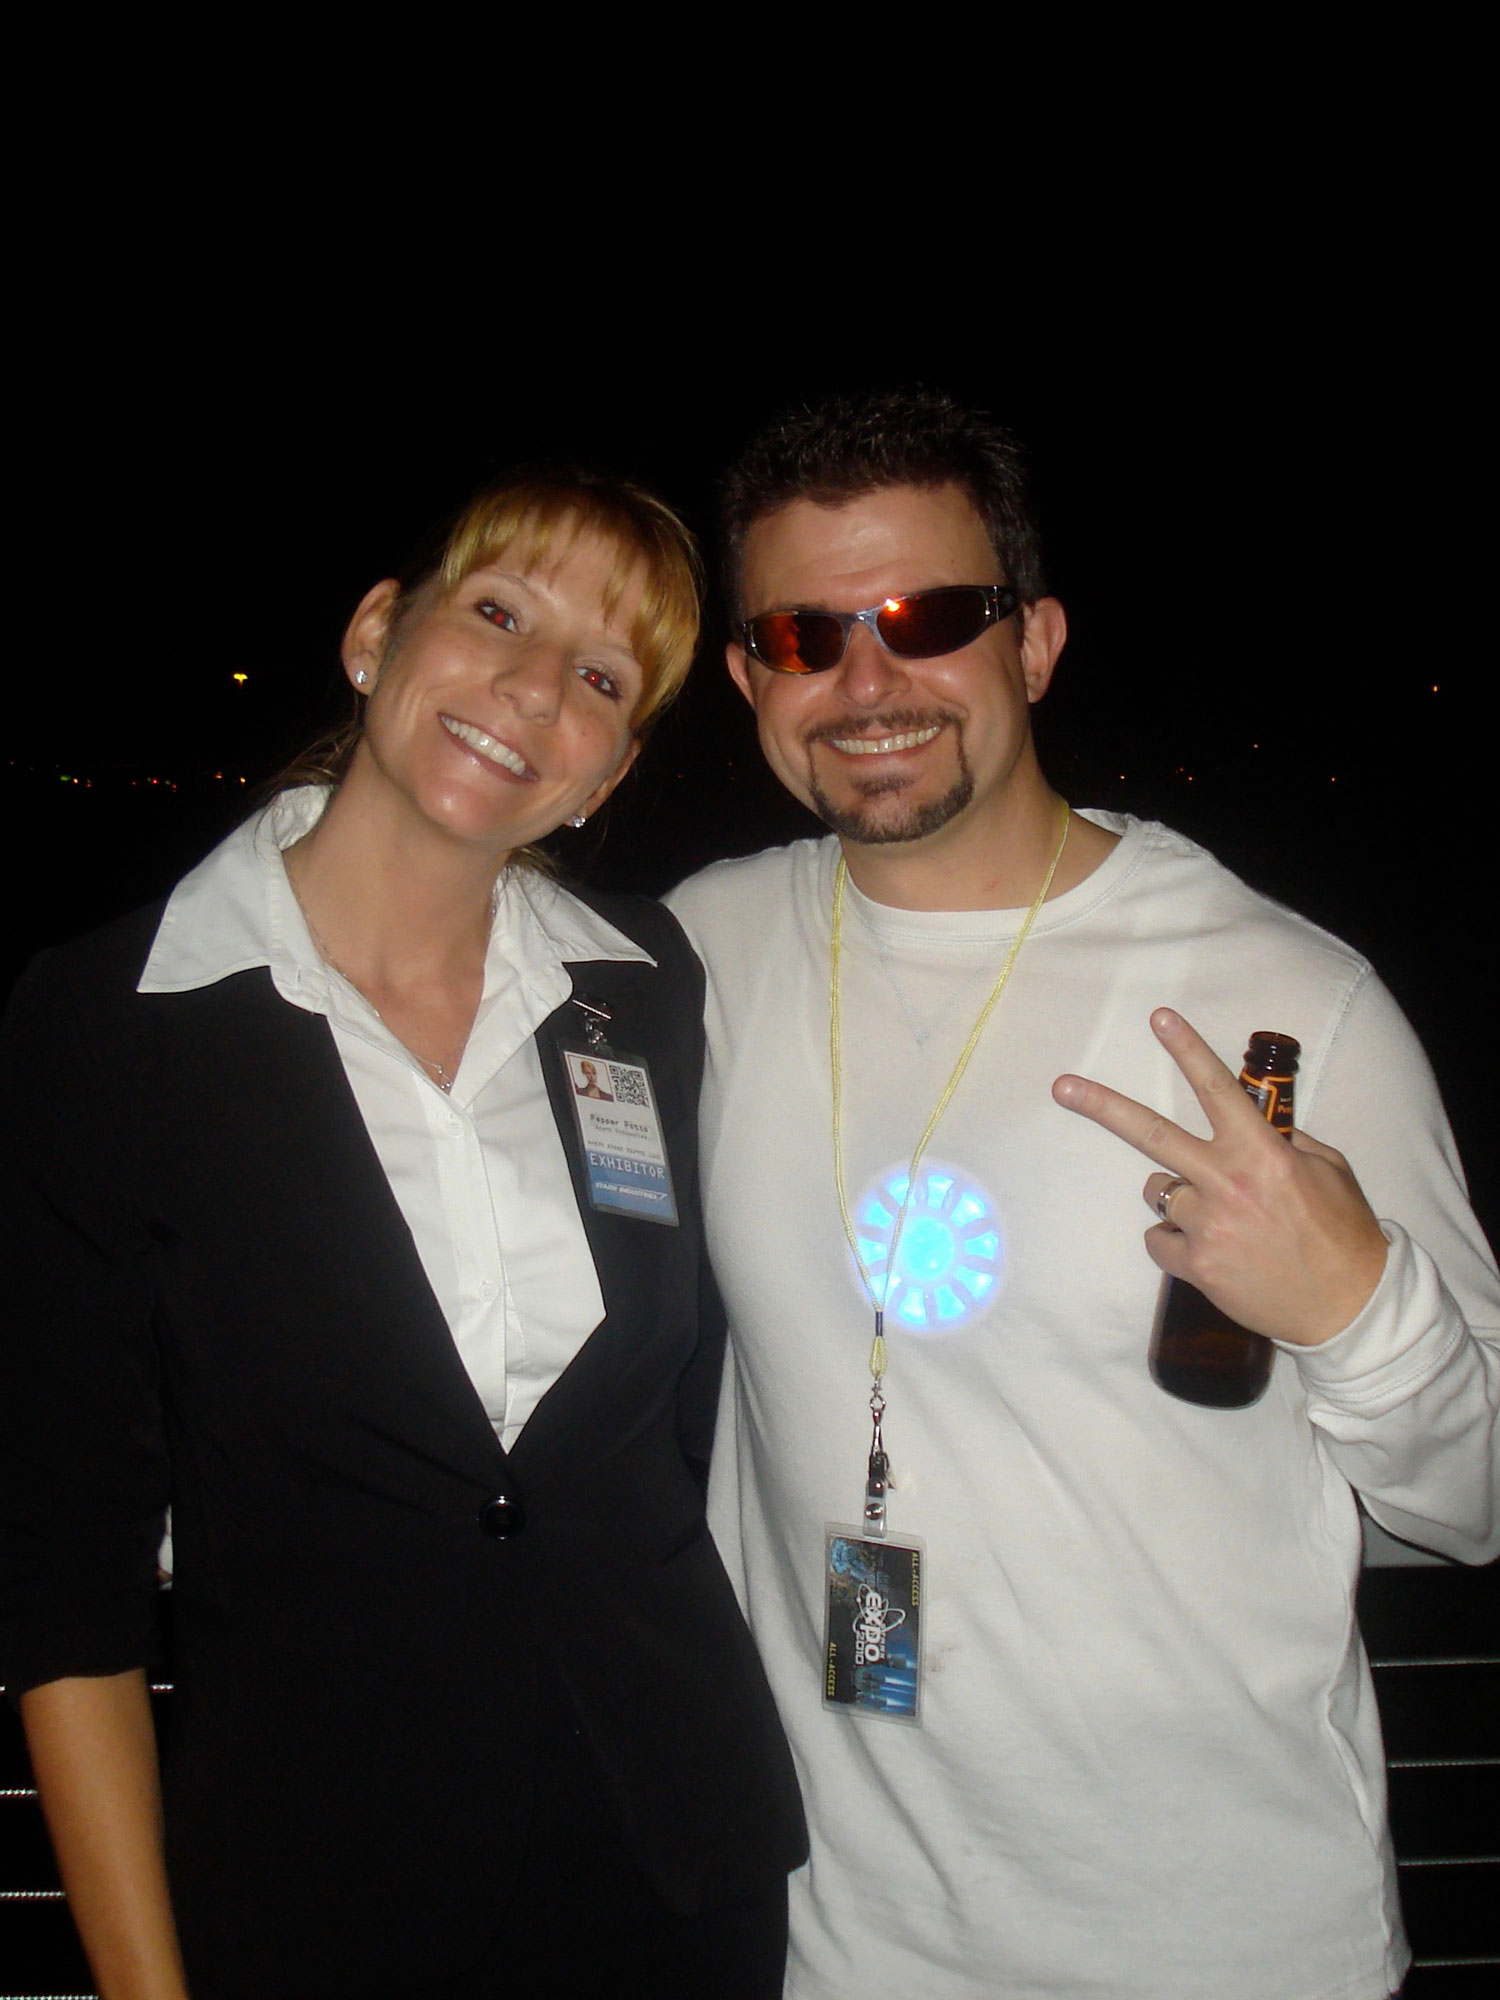 Arc-Reactor-Halloween-Tony-Stark.jpg